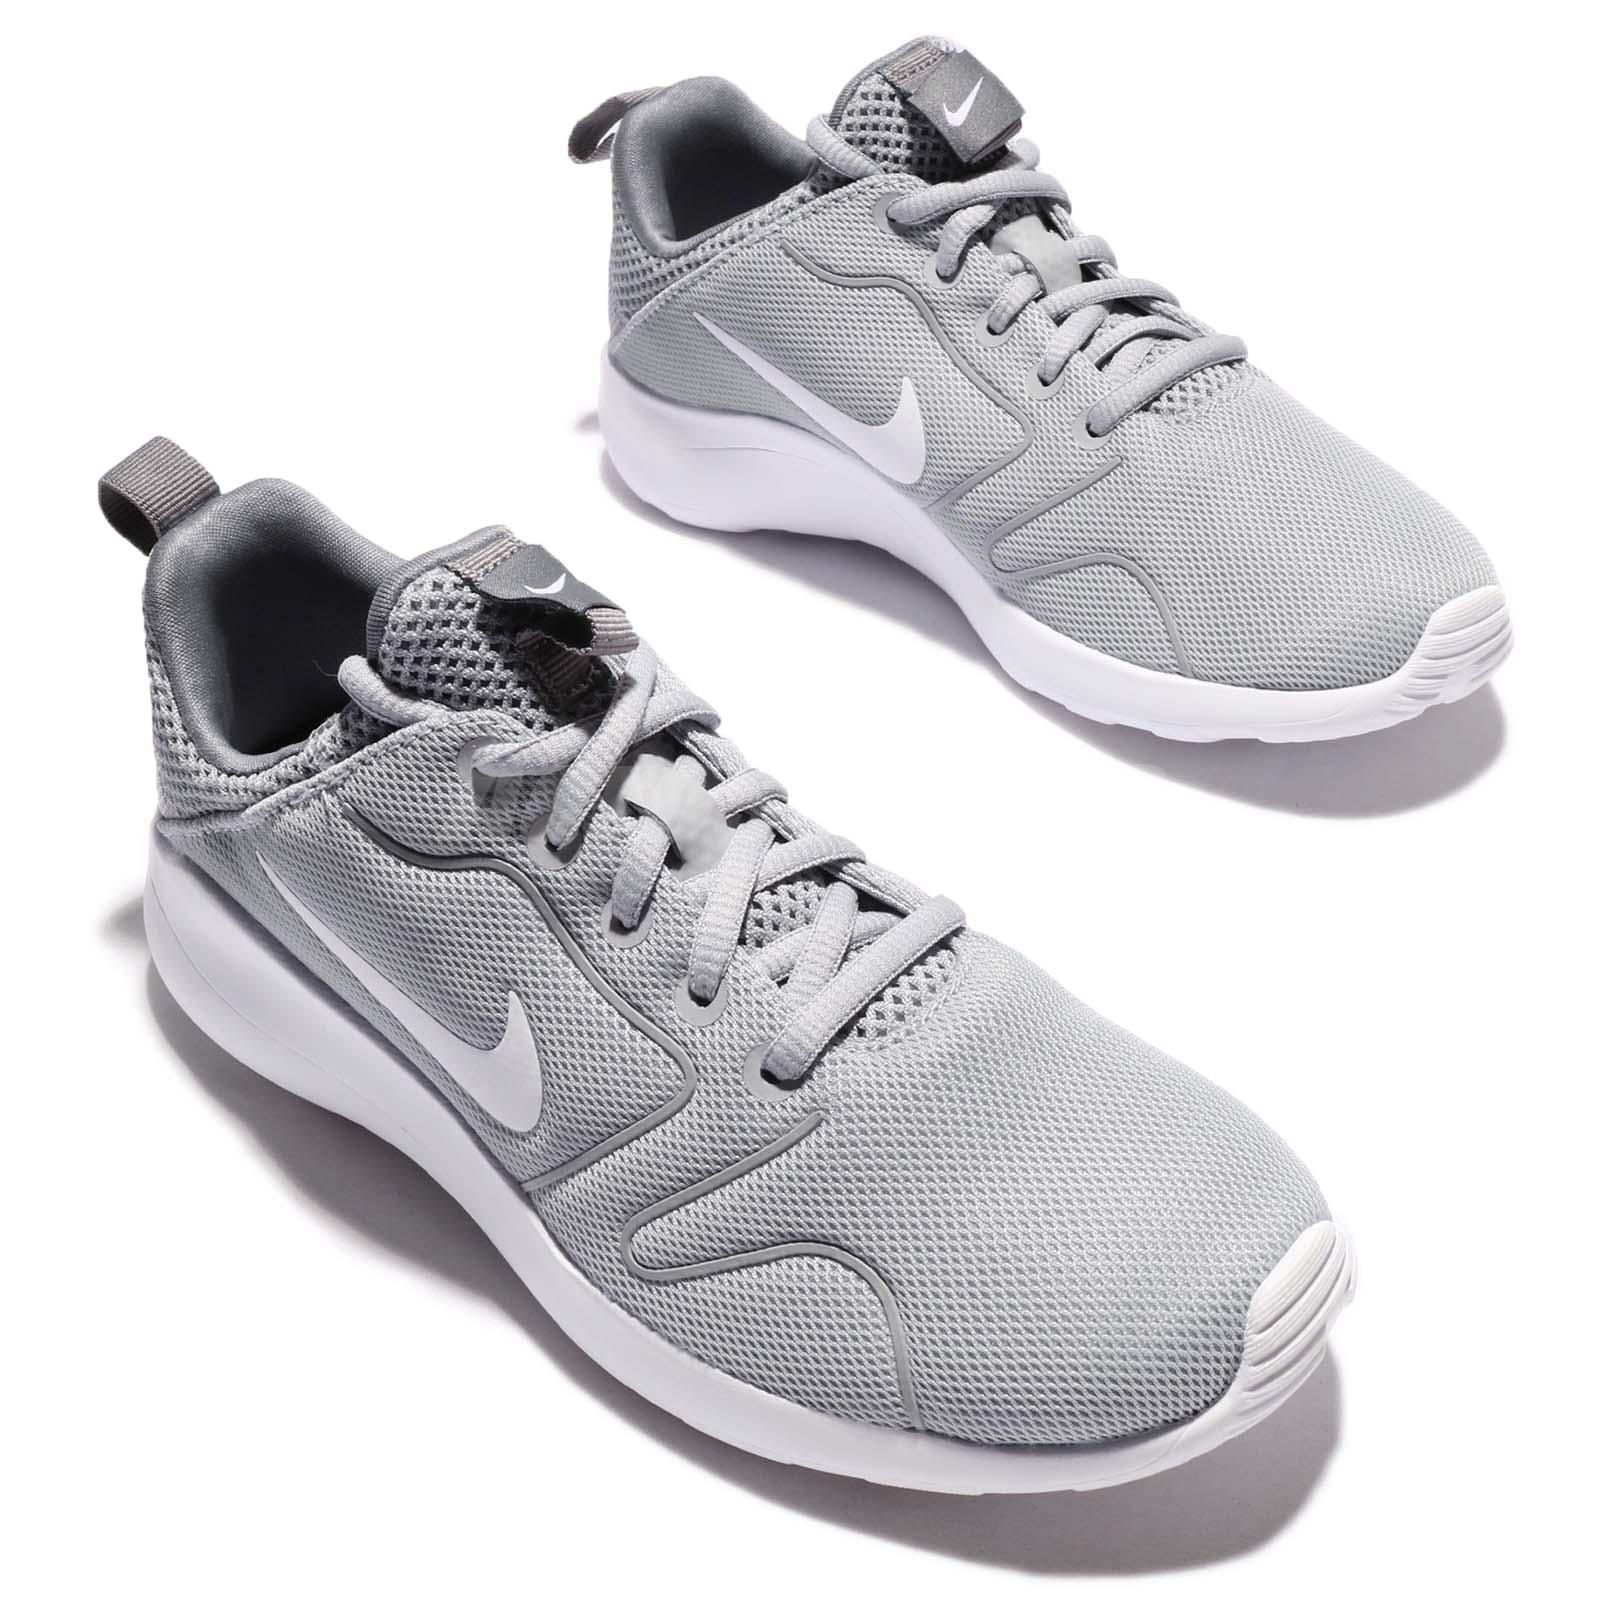 1dc0ecf8da42f3 ... Wmns Nike Kaishi 2.0 Wolf Grey Women Casual Shoes Sneakers T ...